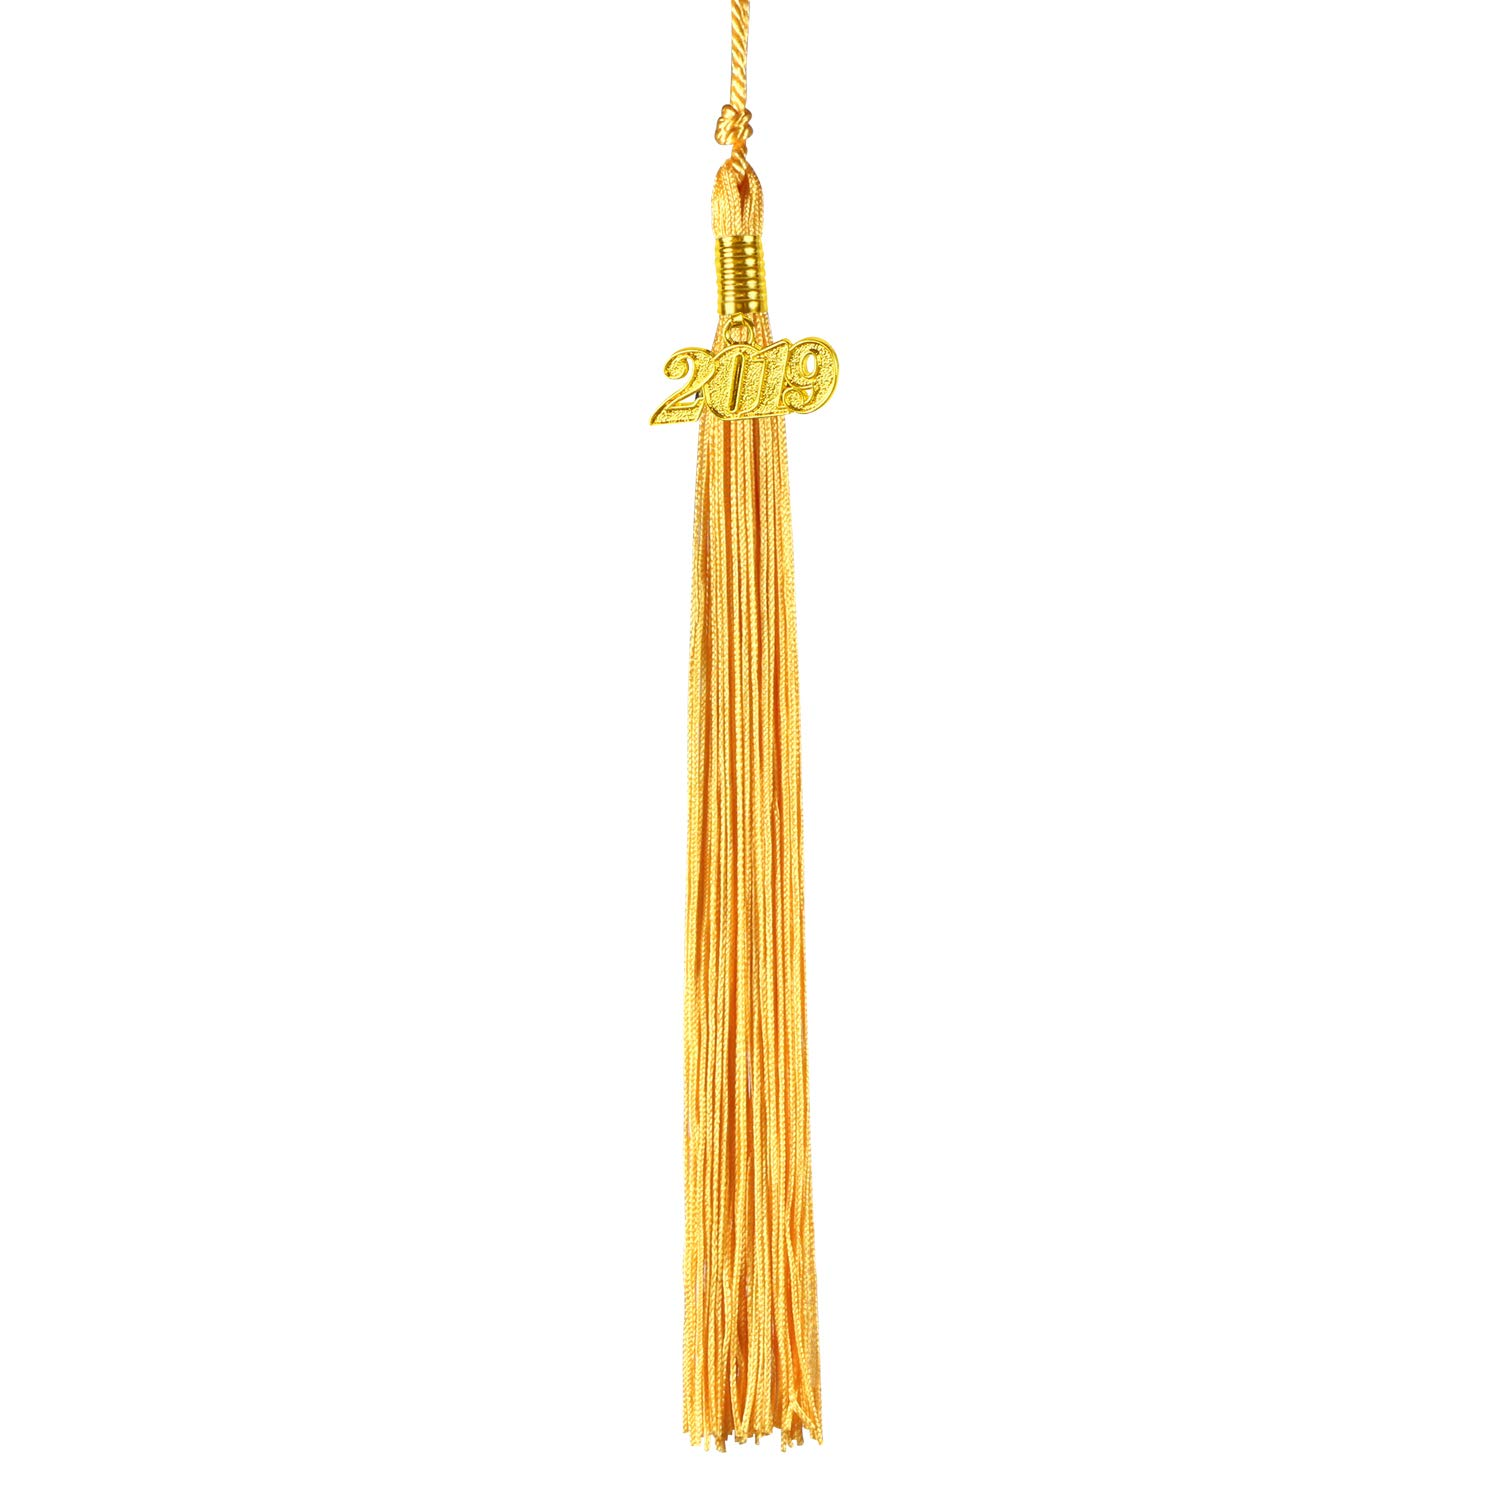 Black and Gold 2 Pcs Graduation Cap Tassel Kissbuty Uniforms Graduation Tassel with 2019 Gold Year Charm for Graduation Photography Party Double Color